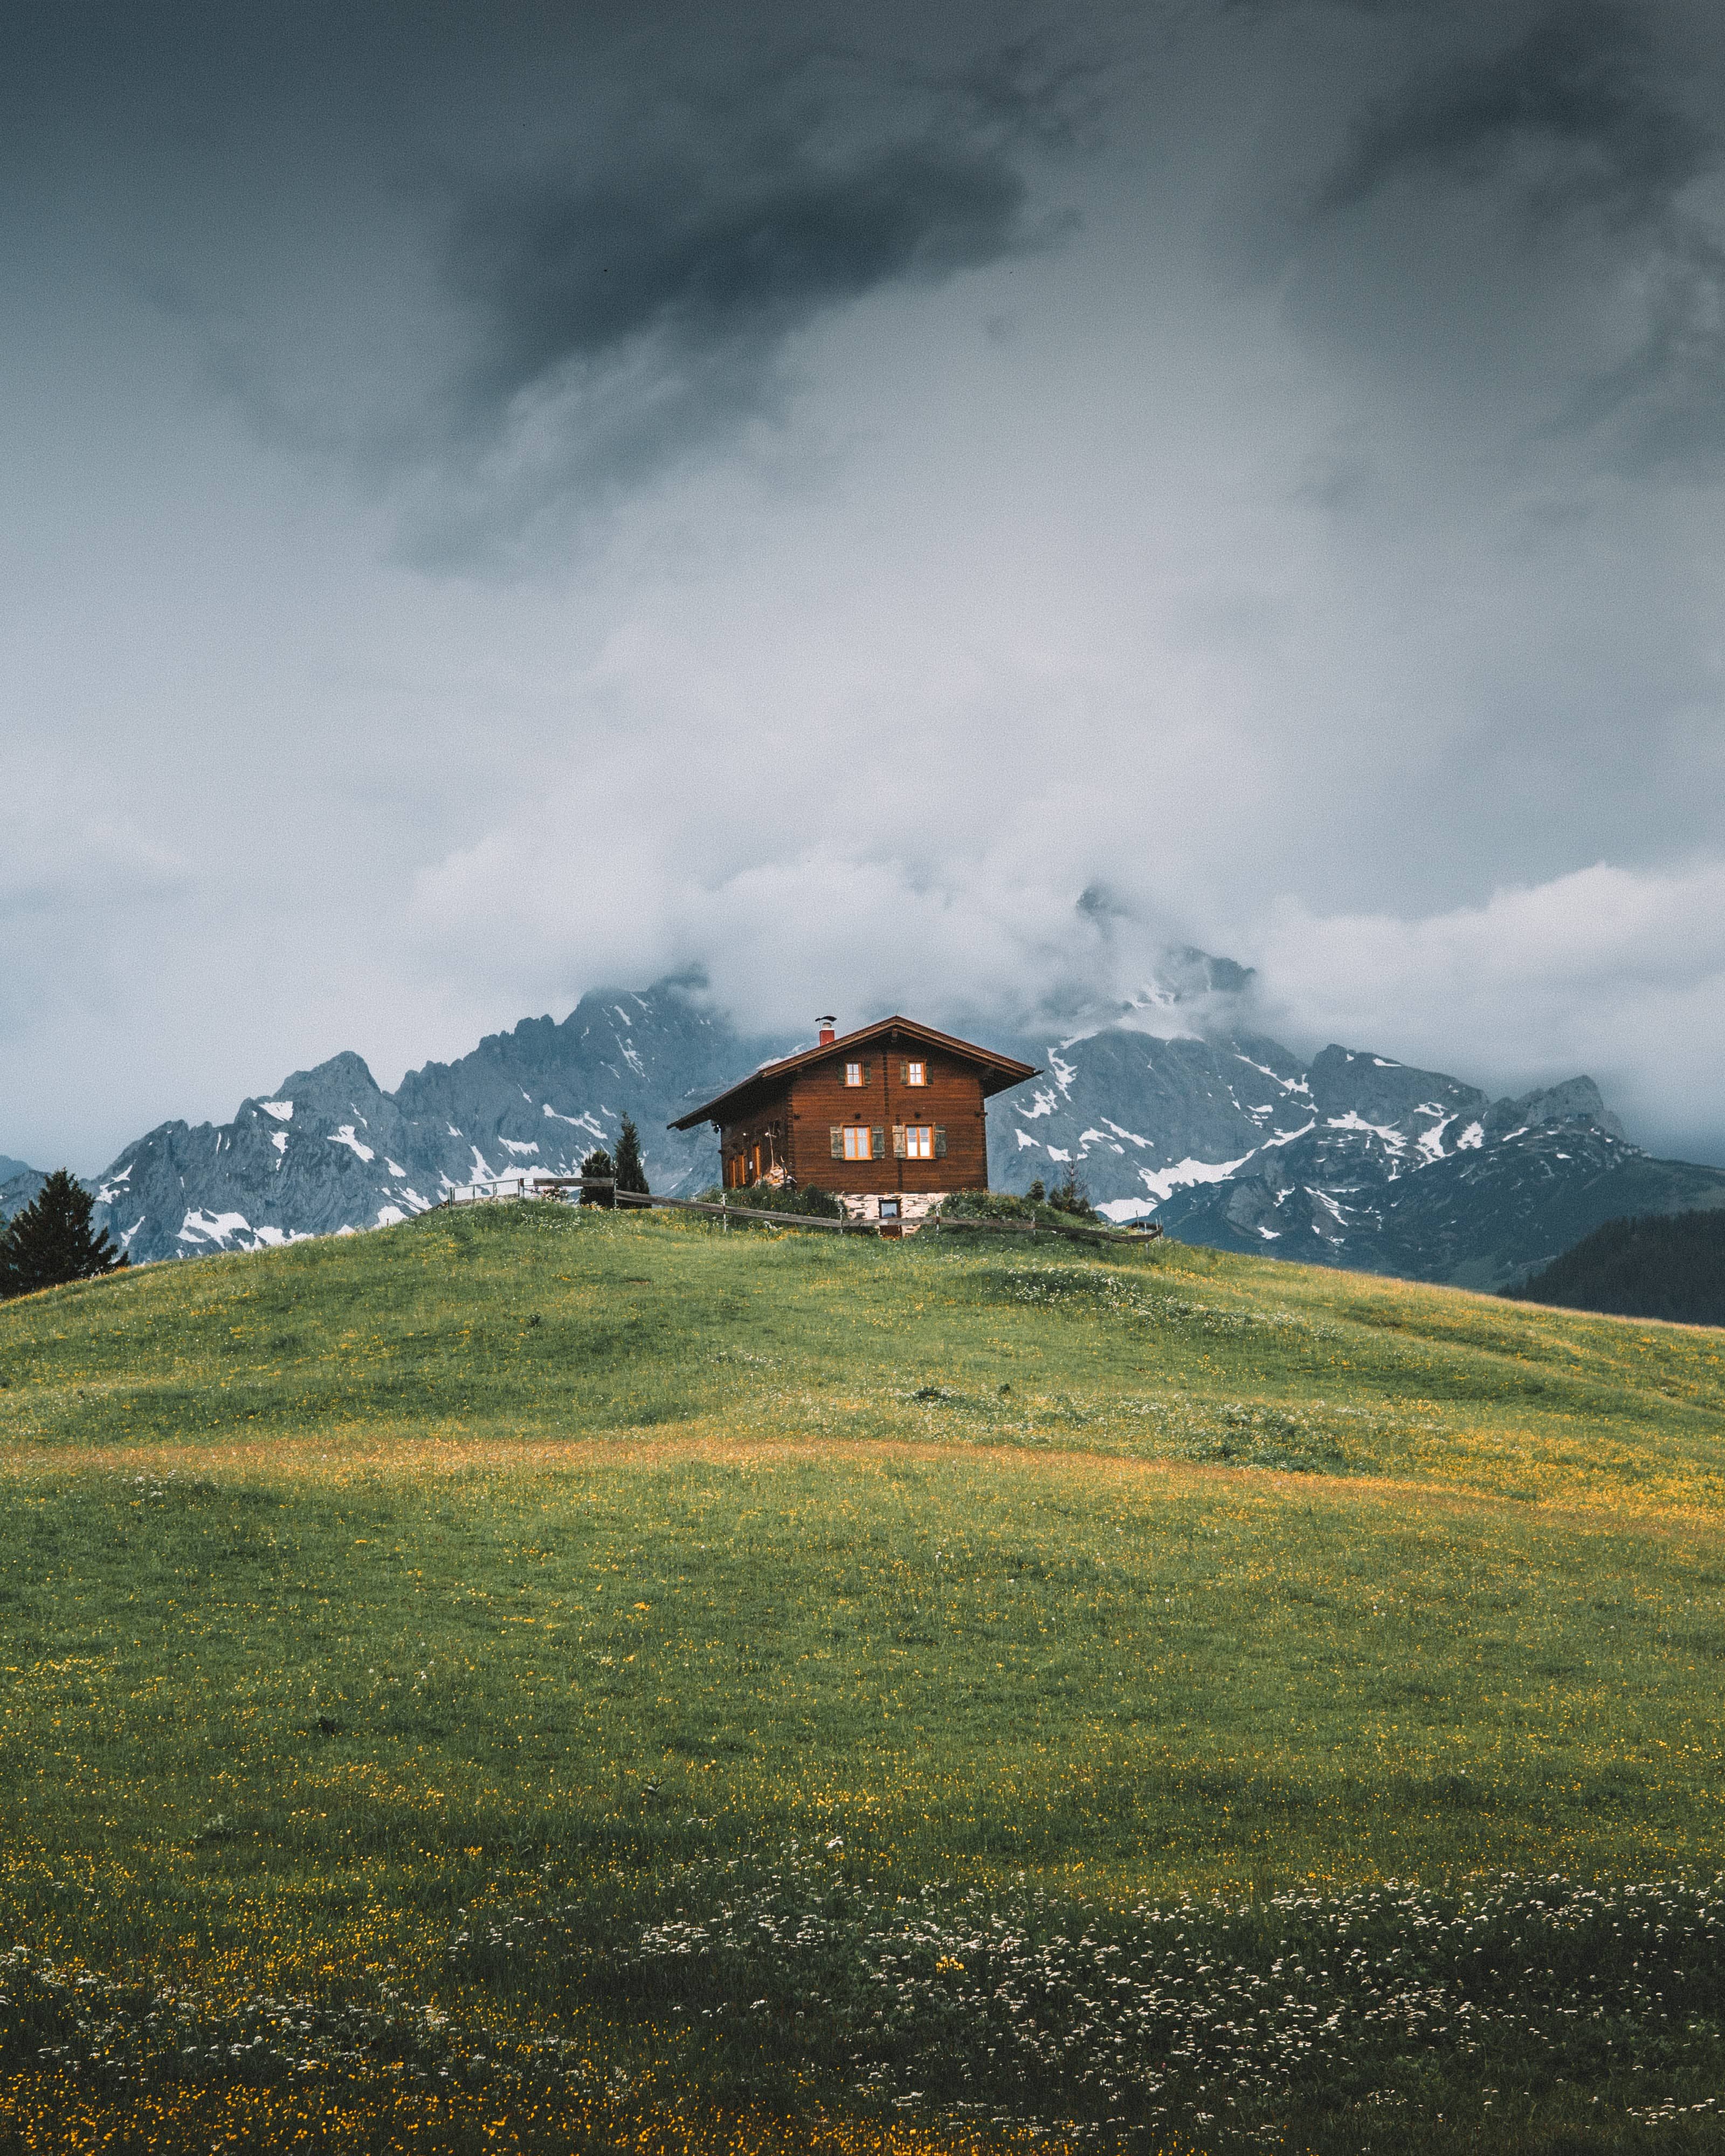 Mountain hut build on a big grass hill in front of big mountains while dark clouds in the sky